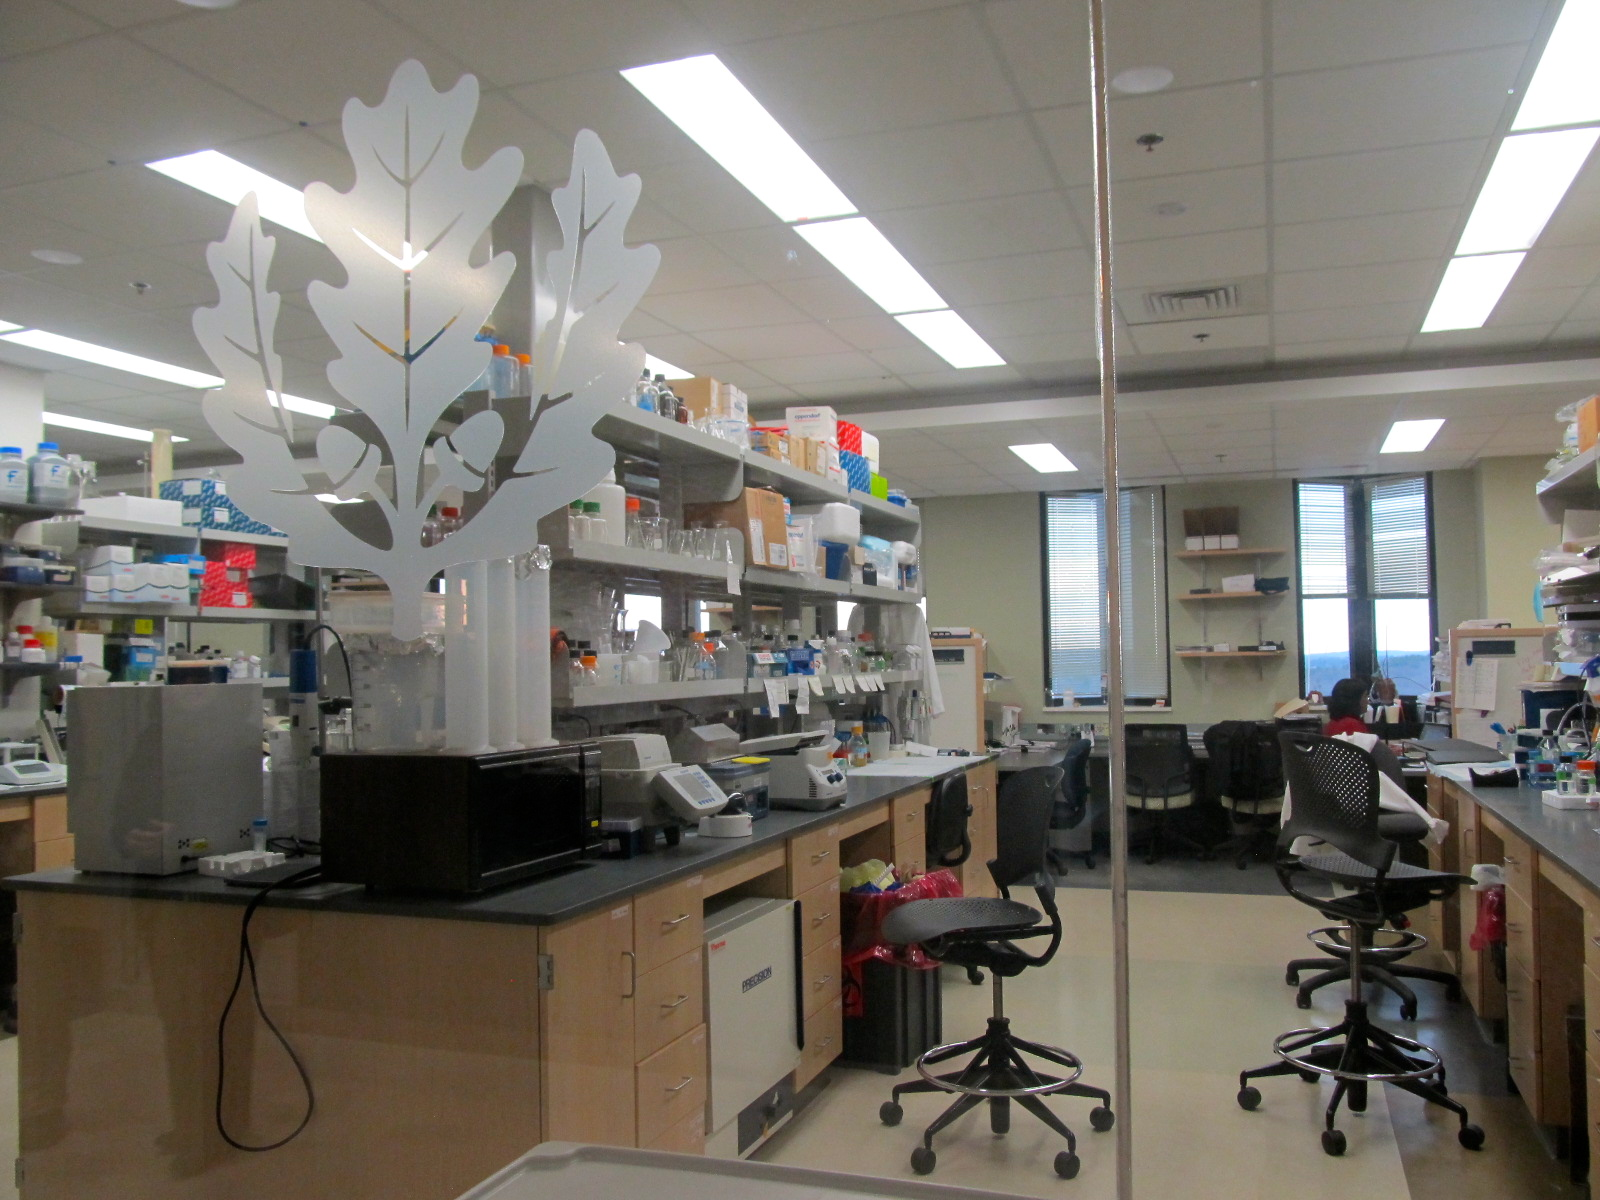 A new research lab at the UConn Health center in Farmington